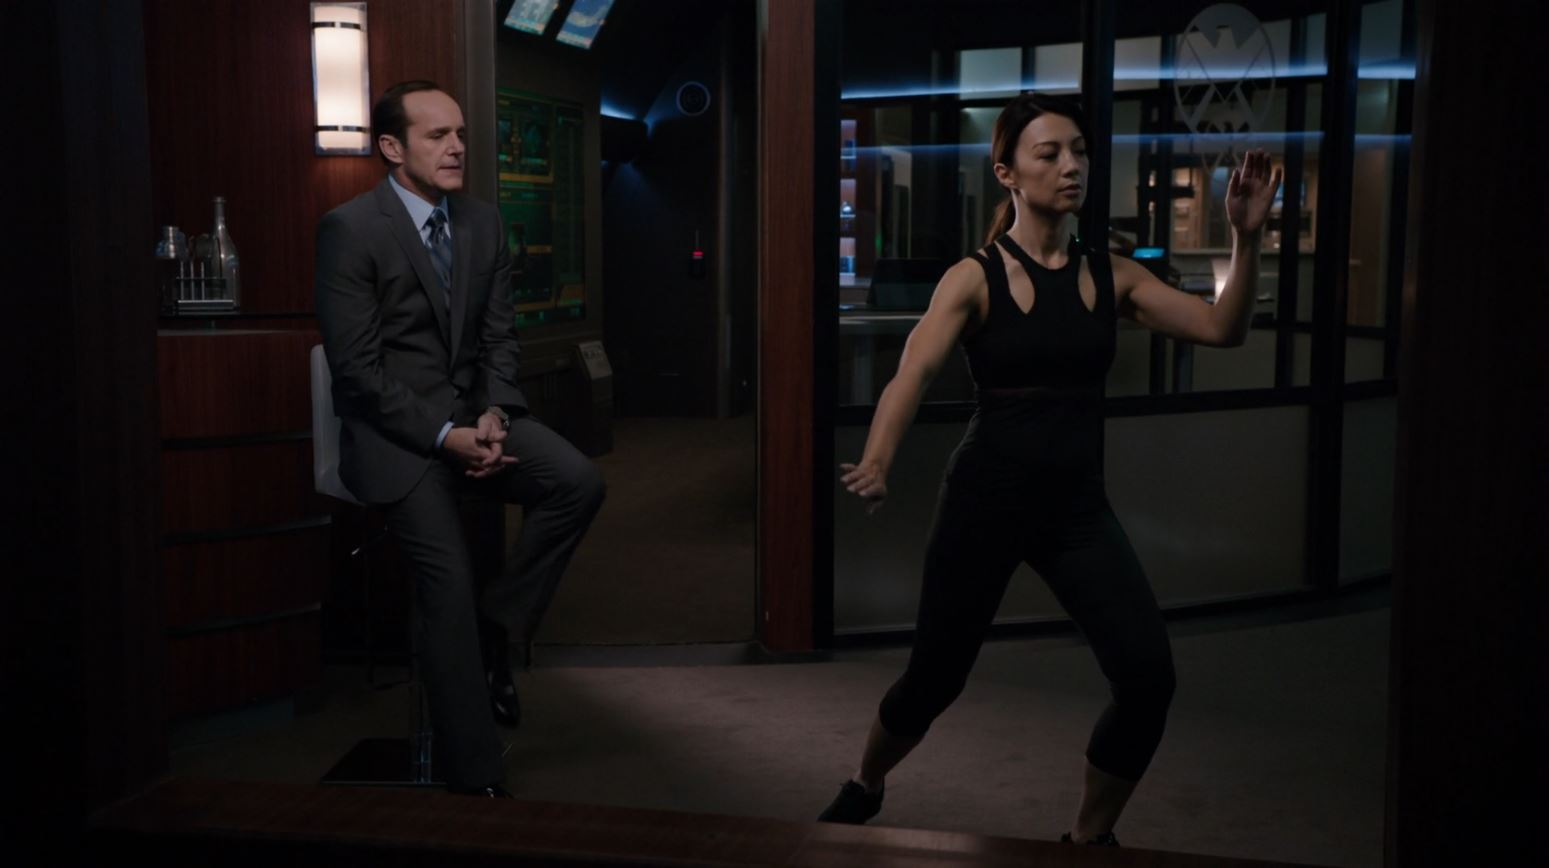 Melinda May (Ming na Wen) exercising with Coulson watching - Agents of SHIELD